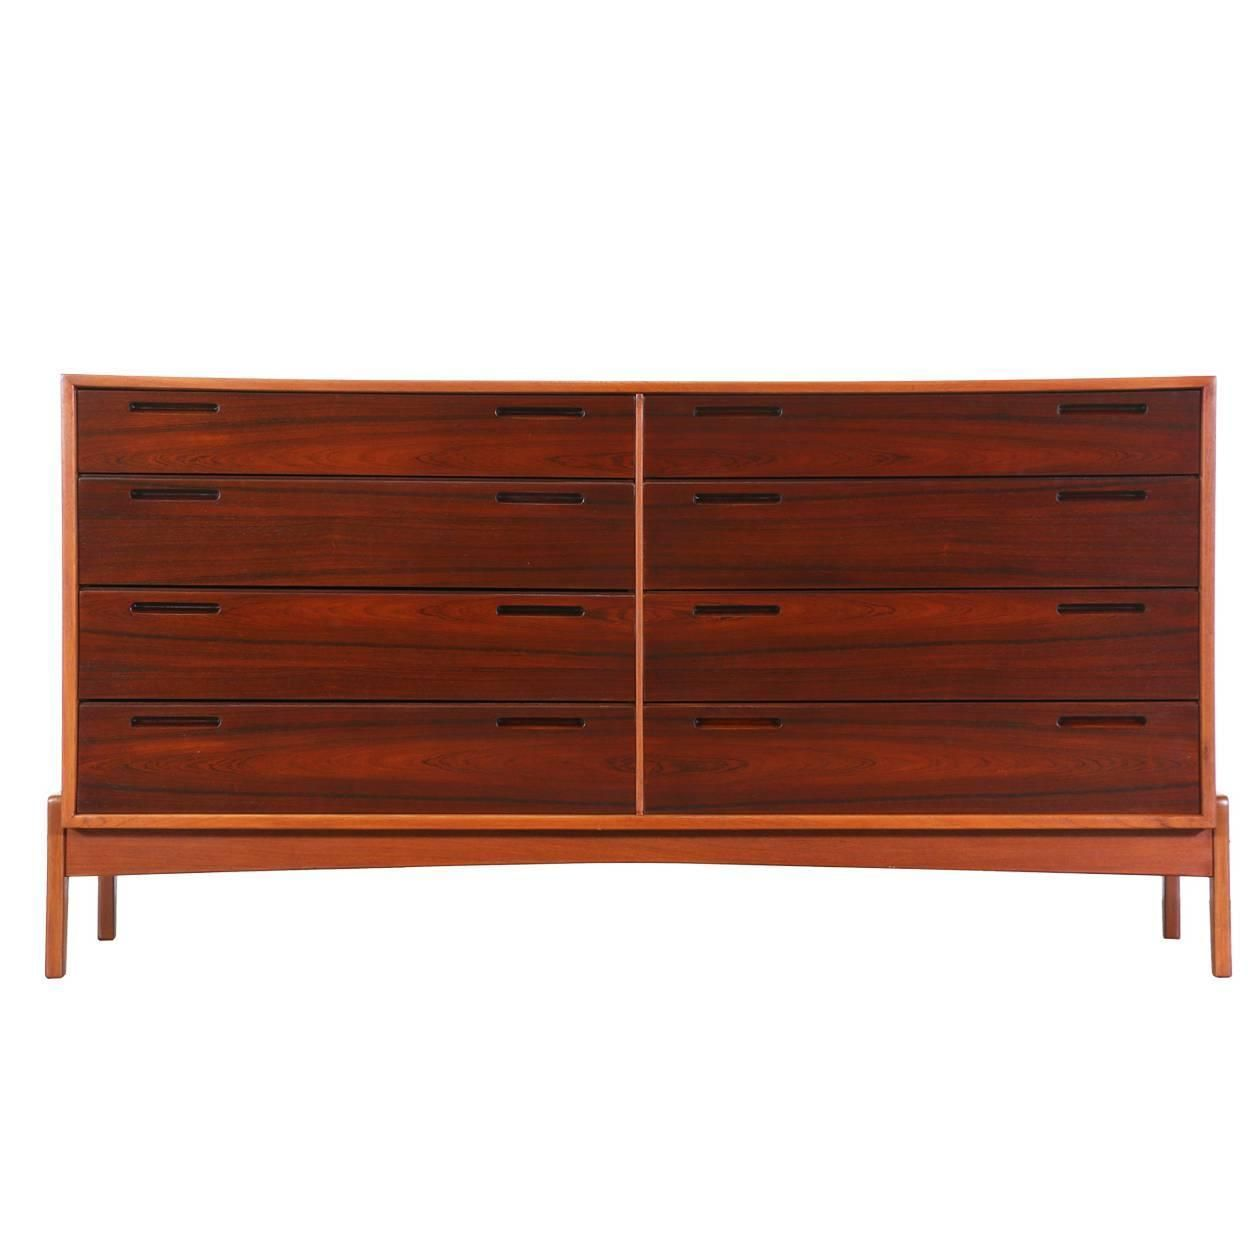 Danish Modern Rosewood And Teak Dresser By William Watting